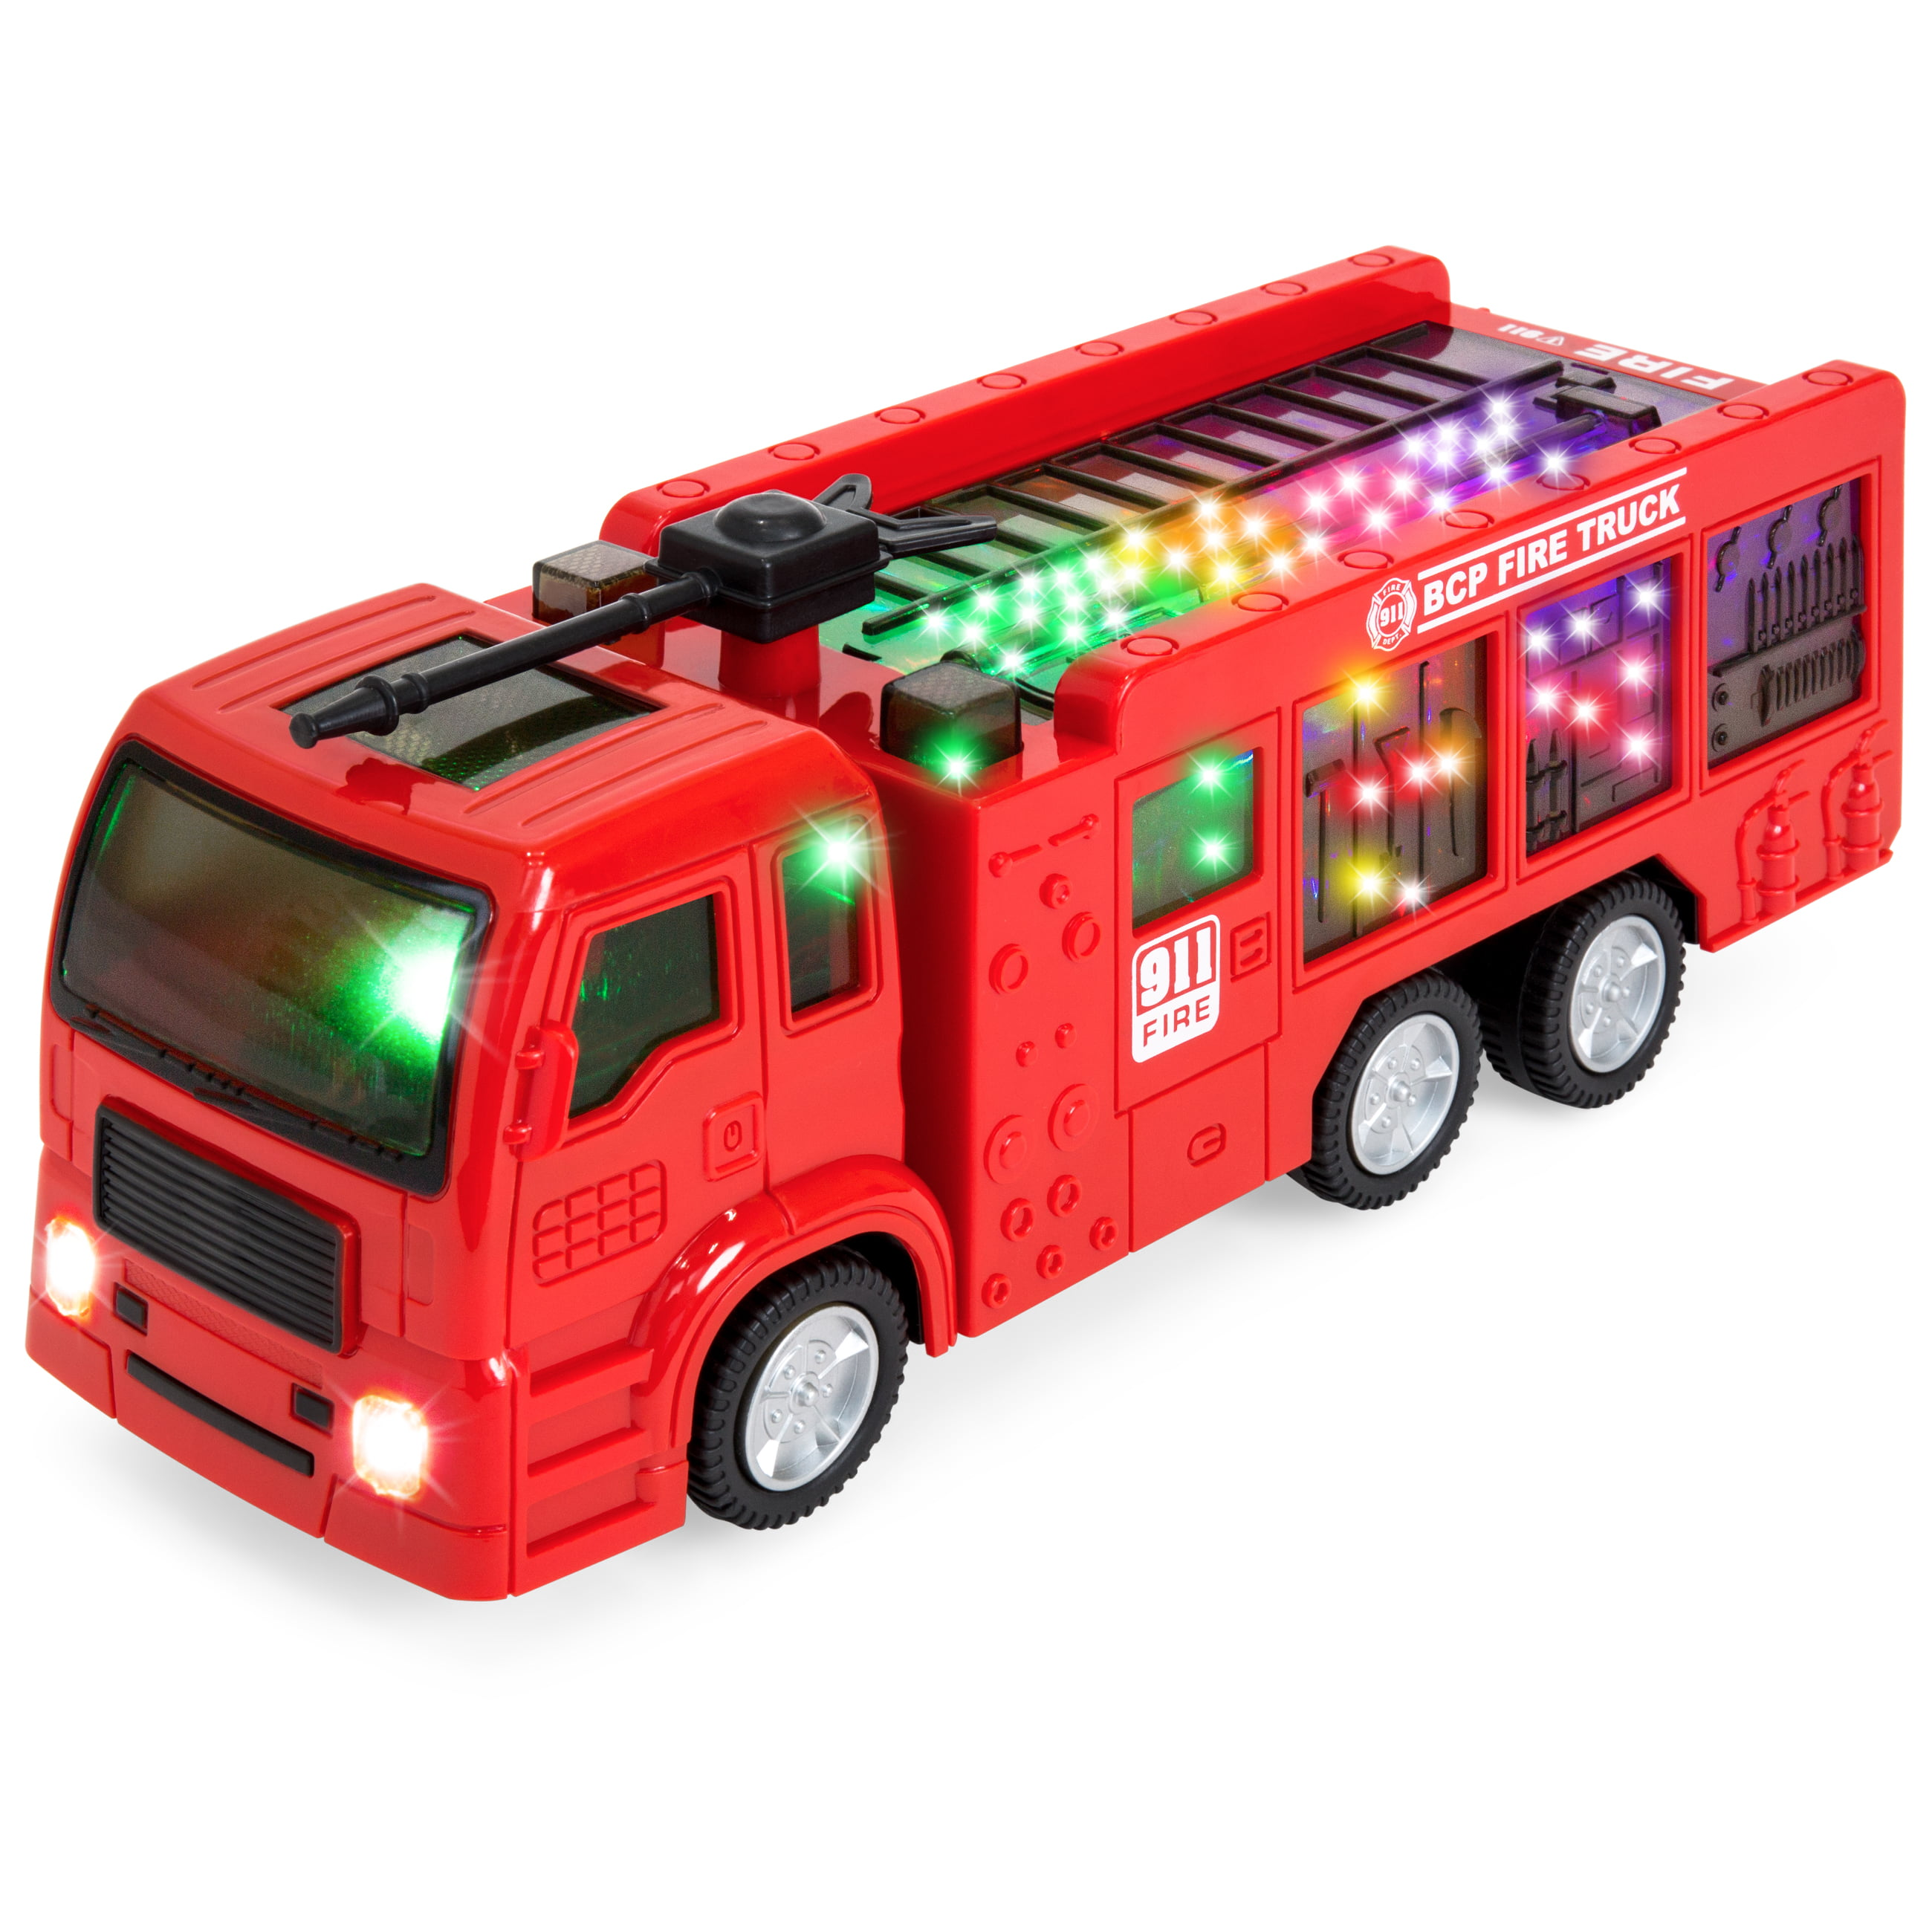 Best Choice Products Toy Fire Truck Electric Flashing Lights and Siren Sound, Bump and Go... by Best Choice Products